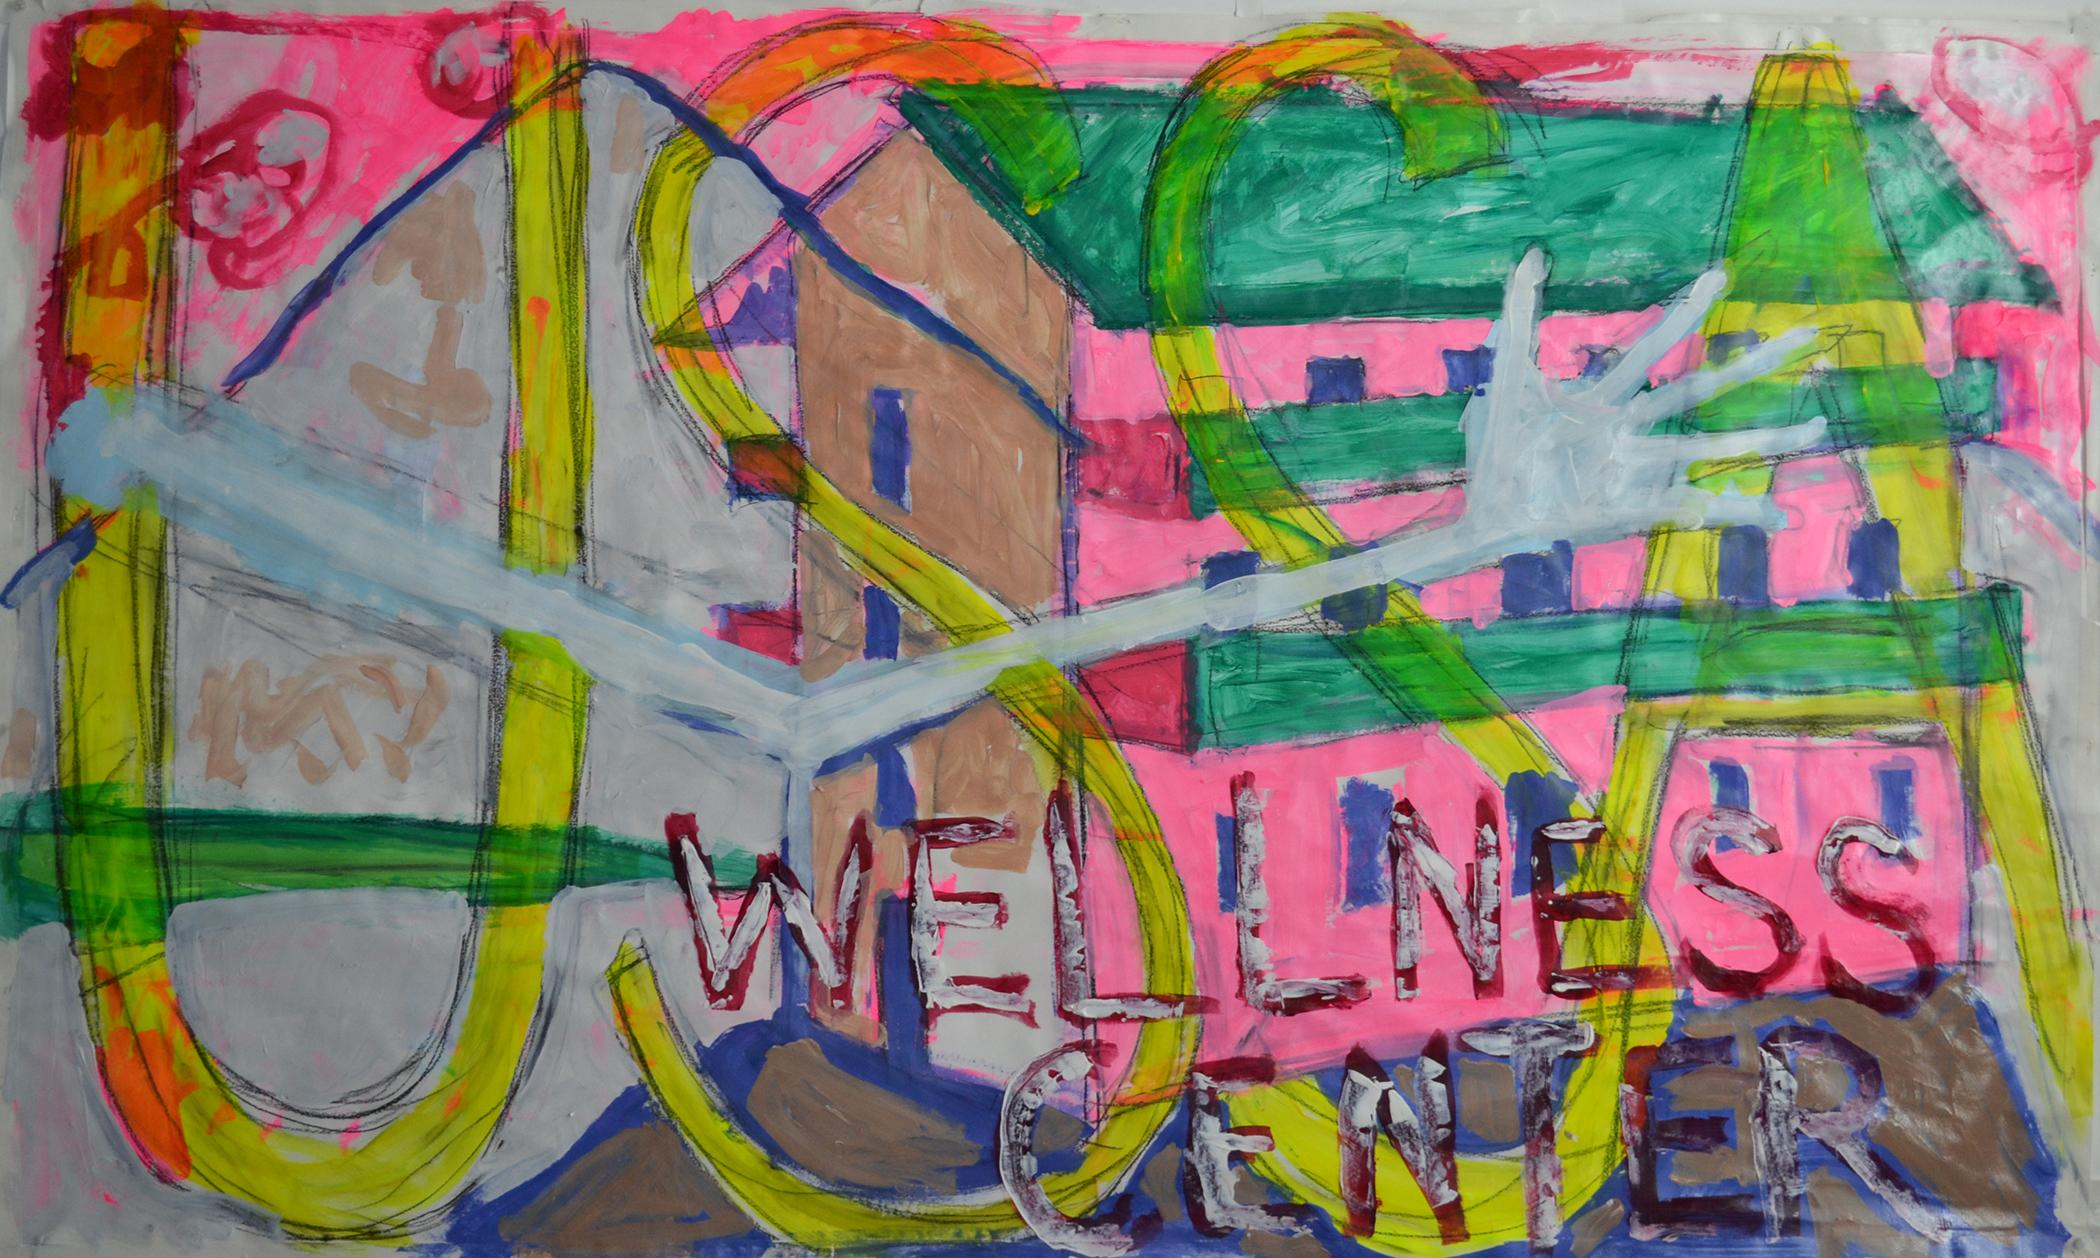 """Vivid mixed media painting of a building and mountain partly obscured by a disembodied, floating arm as well as the texts """"USSA"""" and """"WELLNESS CENTER"""""""